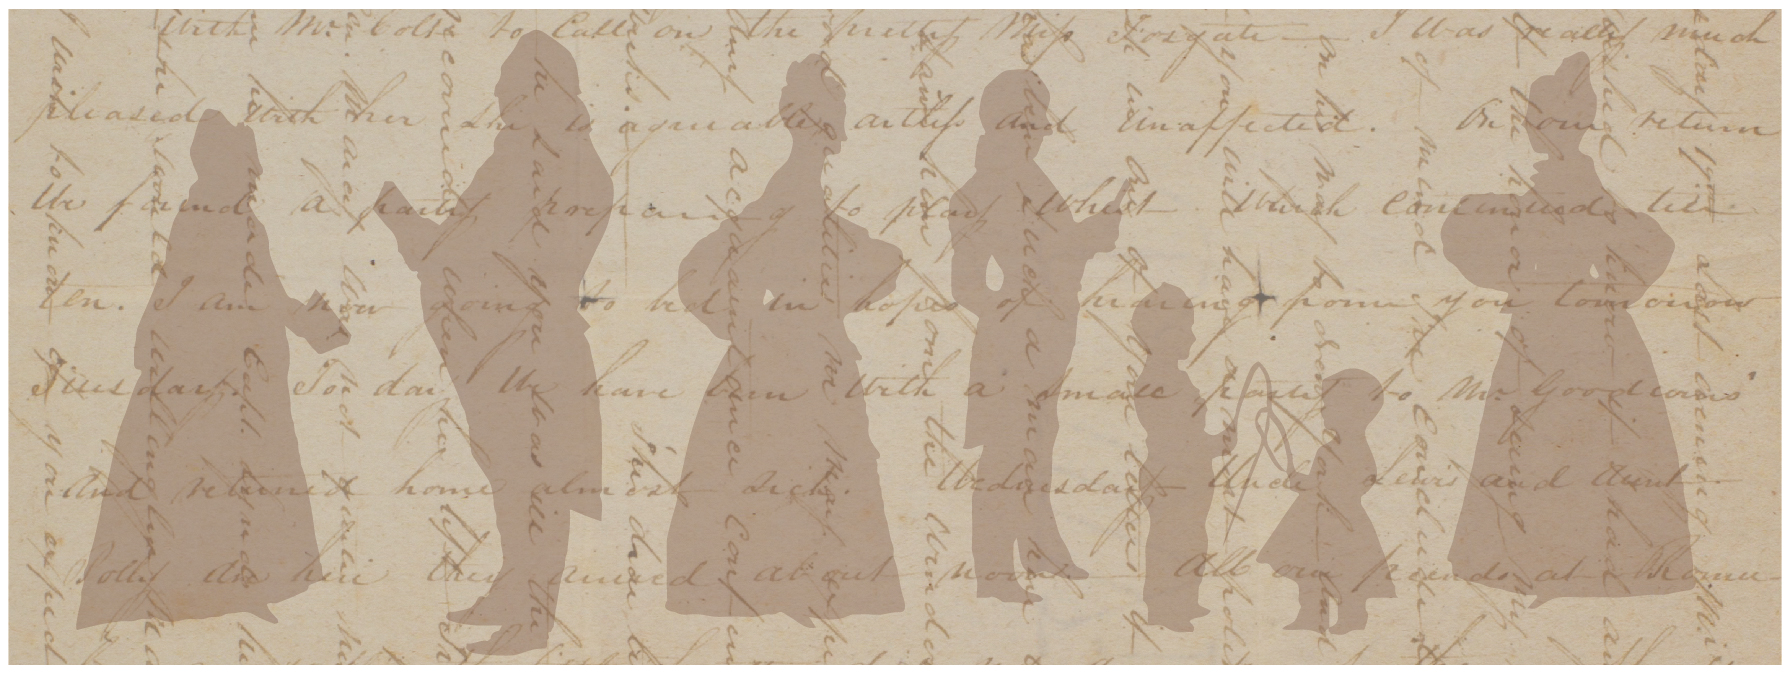 Seward family in shadow image overlaid with crosshatched letter